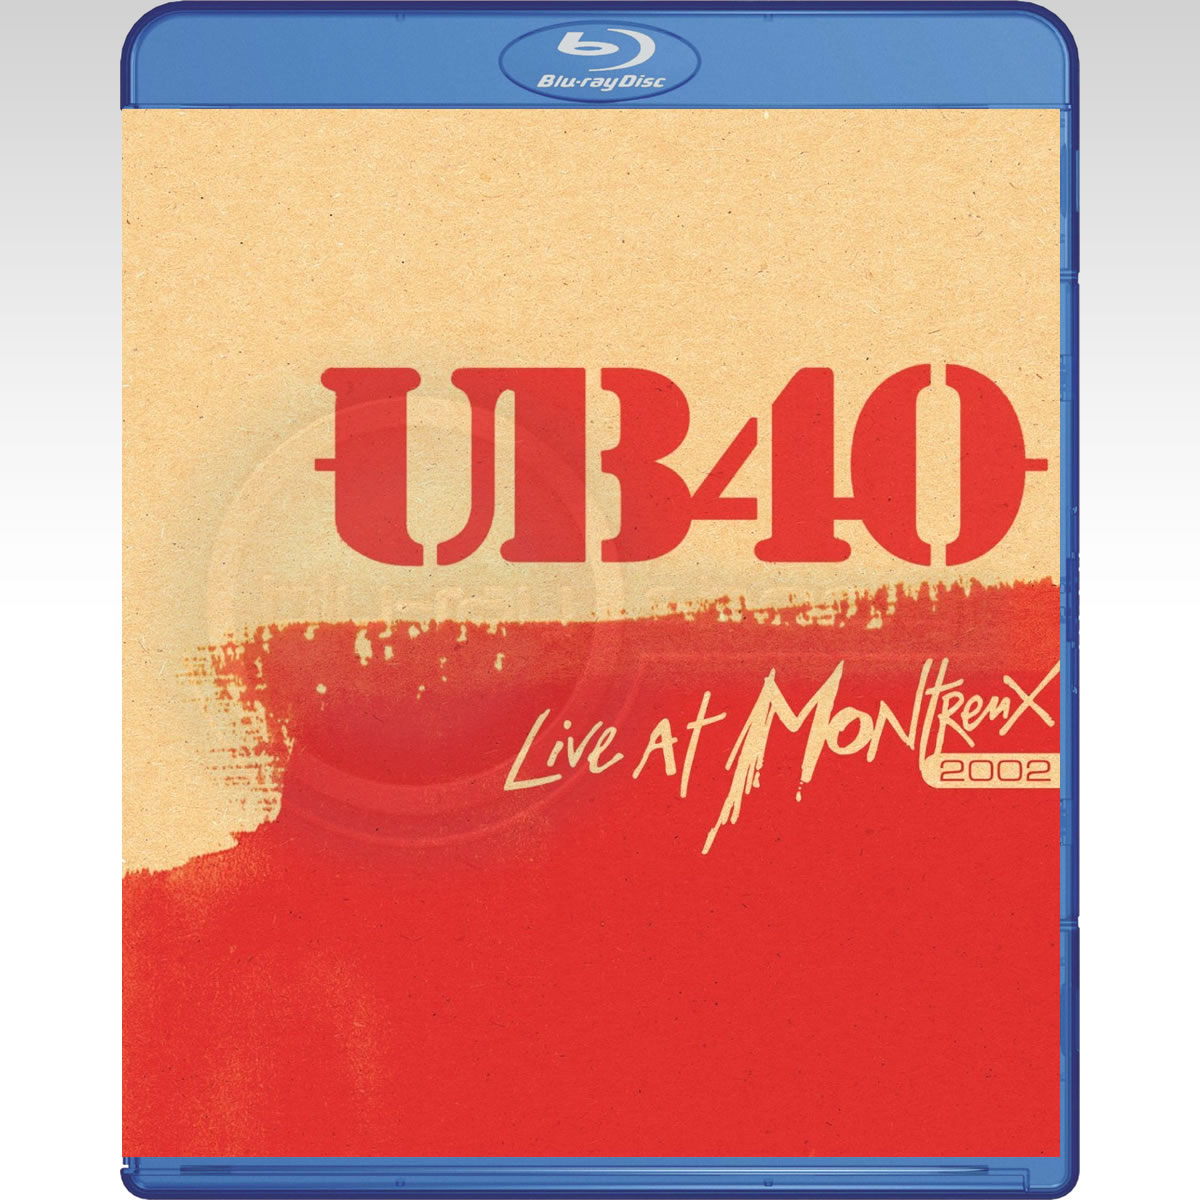 UB40: LIVE AT MONTREUX 2002 (BLU-RAY)